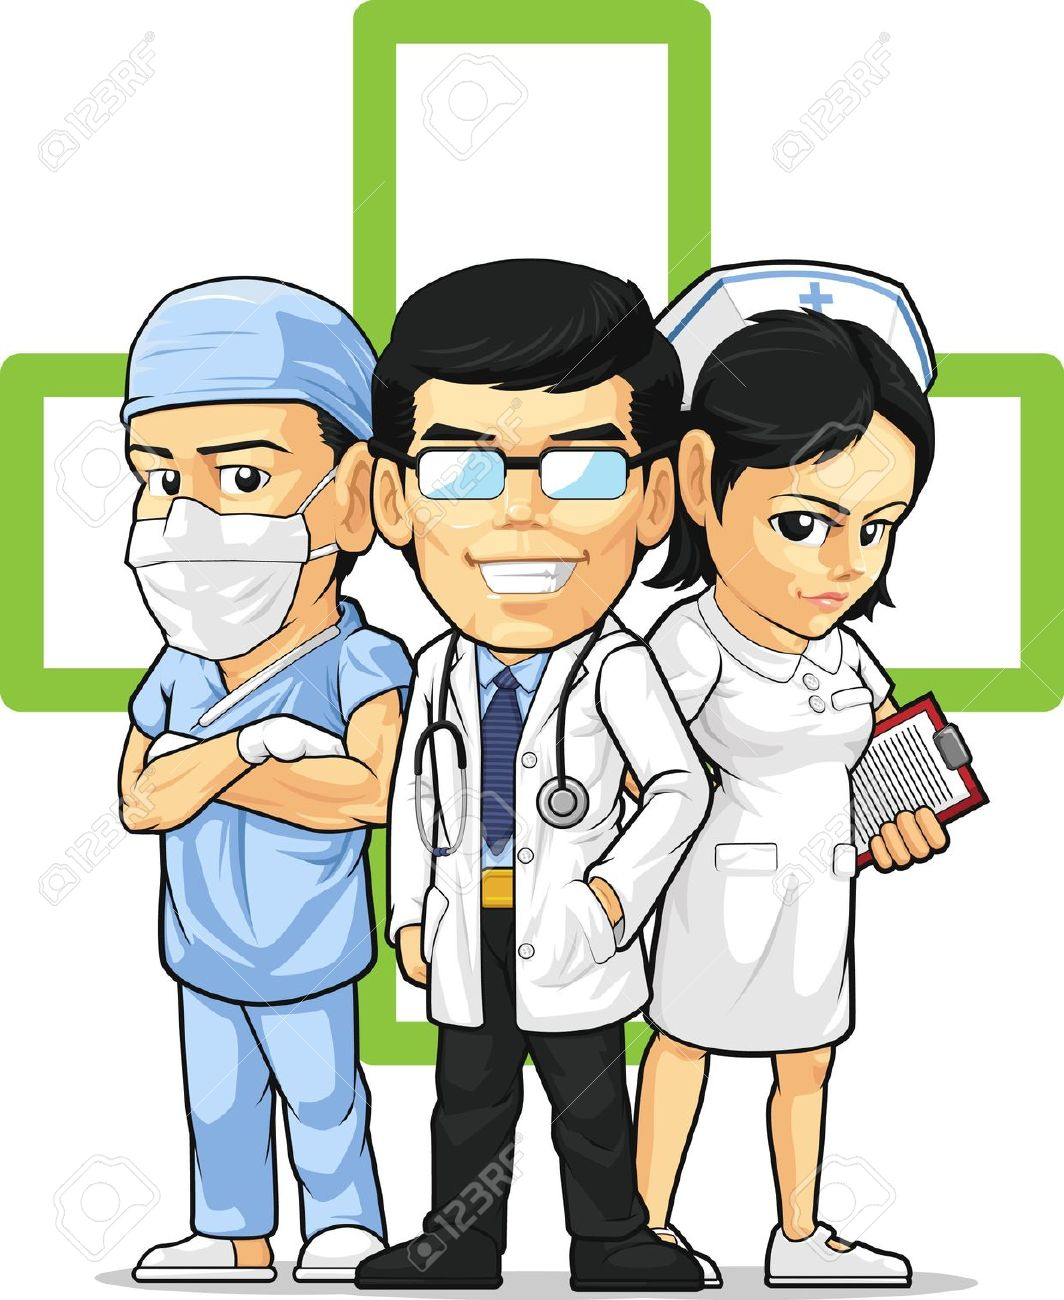 Professional clipart hospital staff Clipart cliparts Staff Staff Care